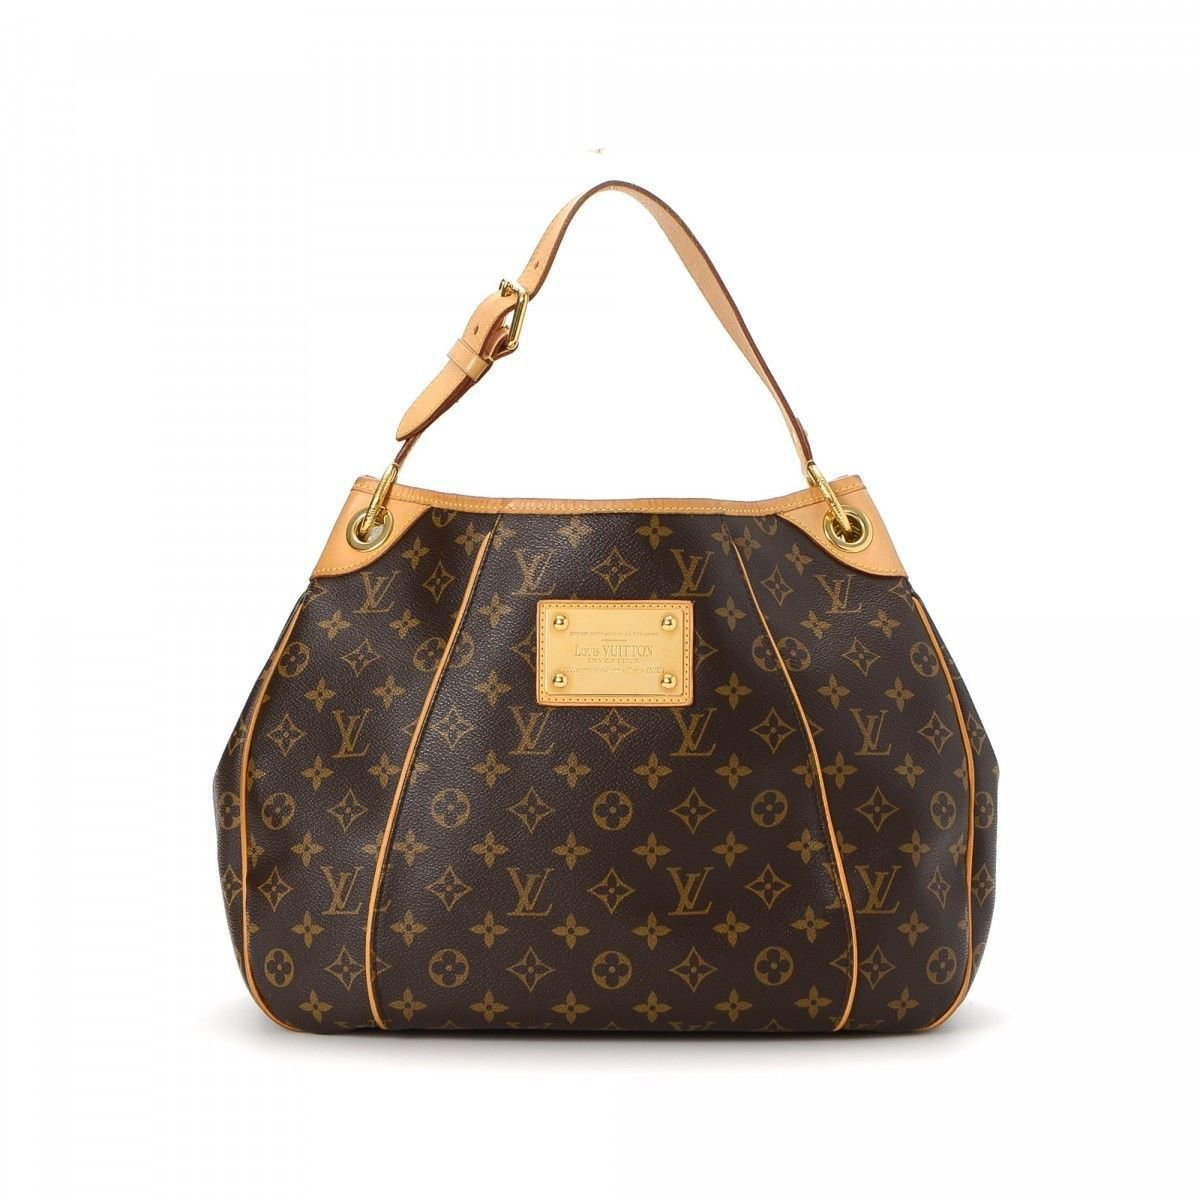 Louis Vuitton Galleria PM - Iconics Preloved Luxury